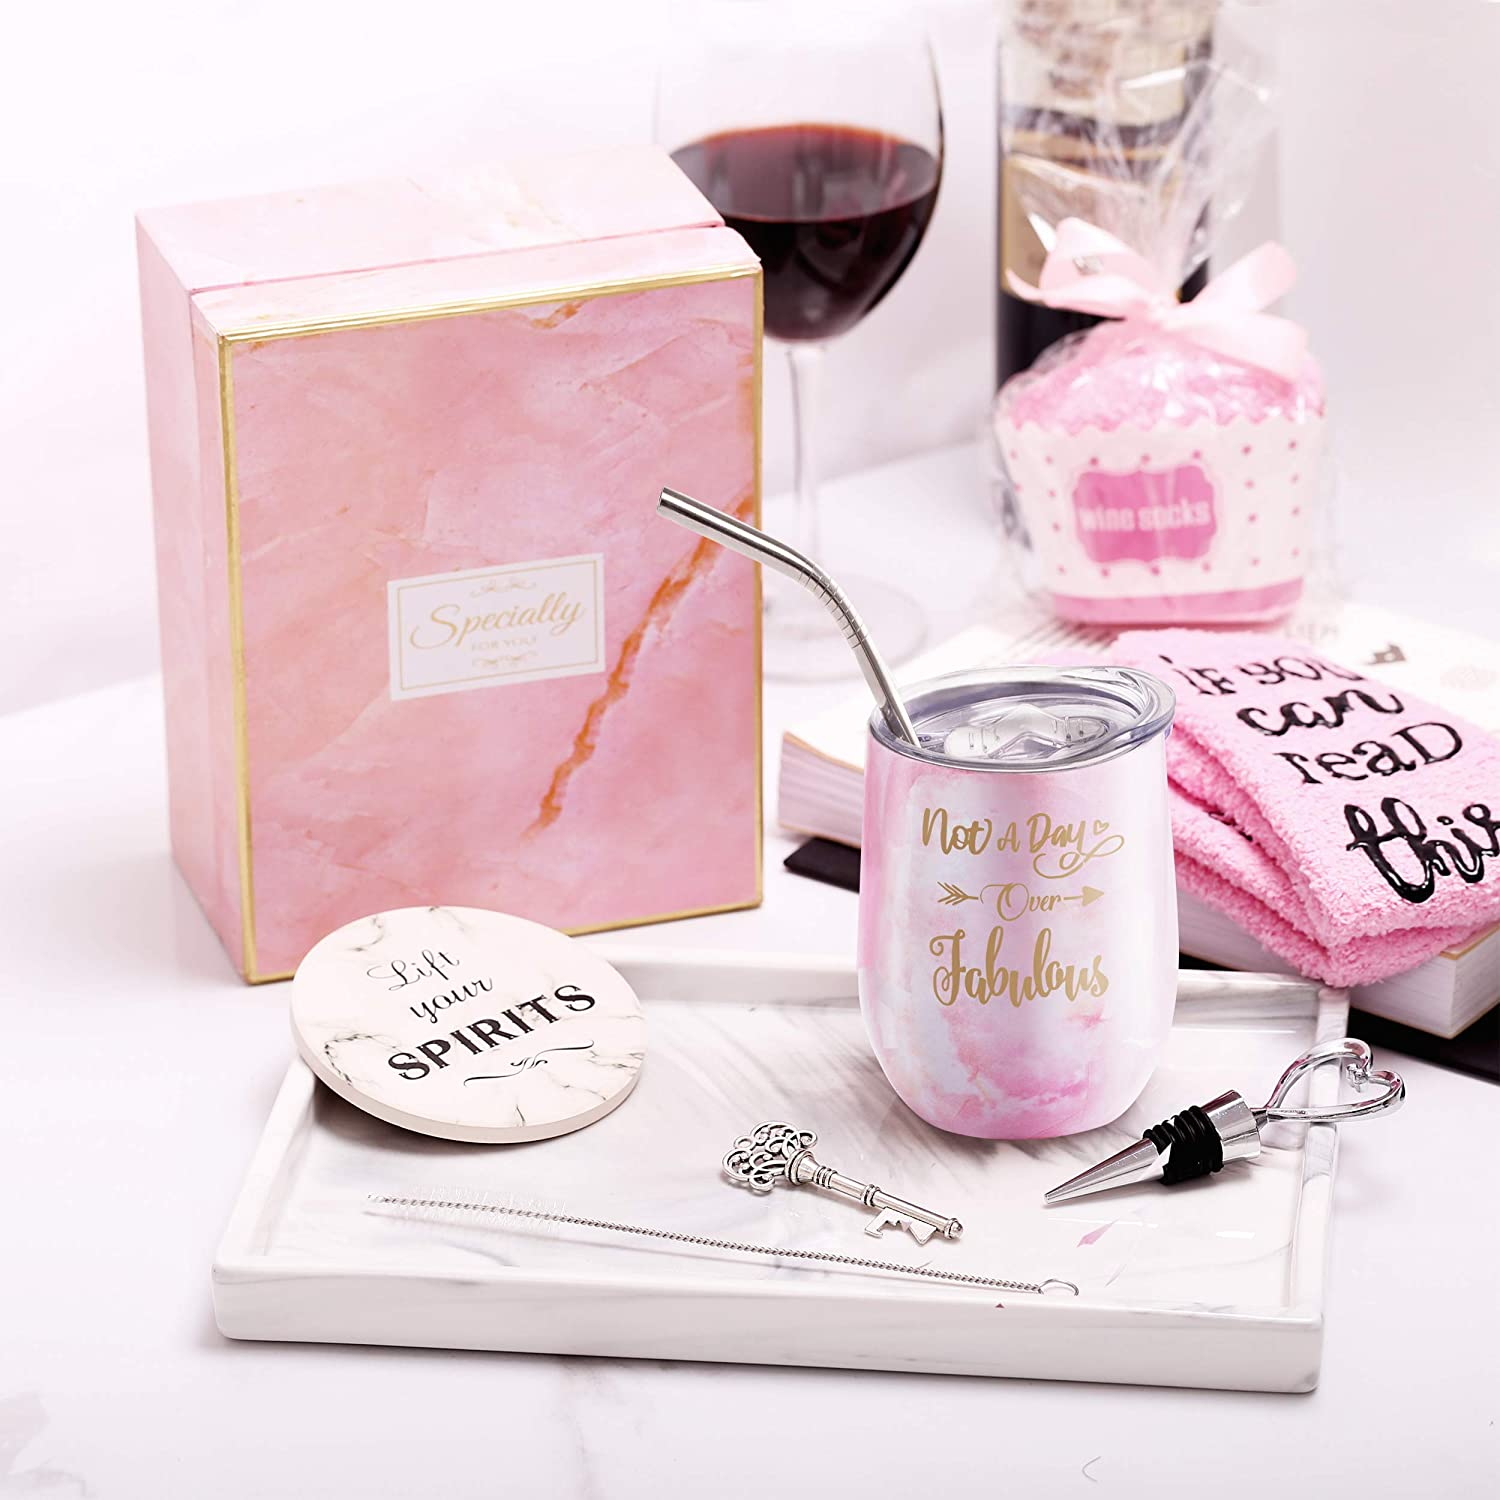 Wife Funny Birthday Wine Gift Ideas for Her Yorktend Not a Day Over Fabulous Wine Tumbler Grandma Mom Aunt Fun Birthday Gifts for Women Sister Best Friend BFF Coworker Daughter